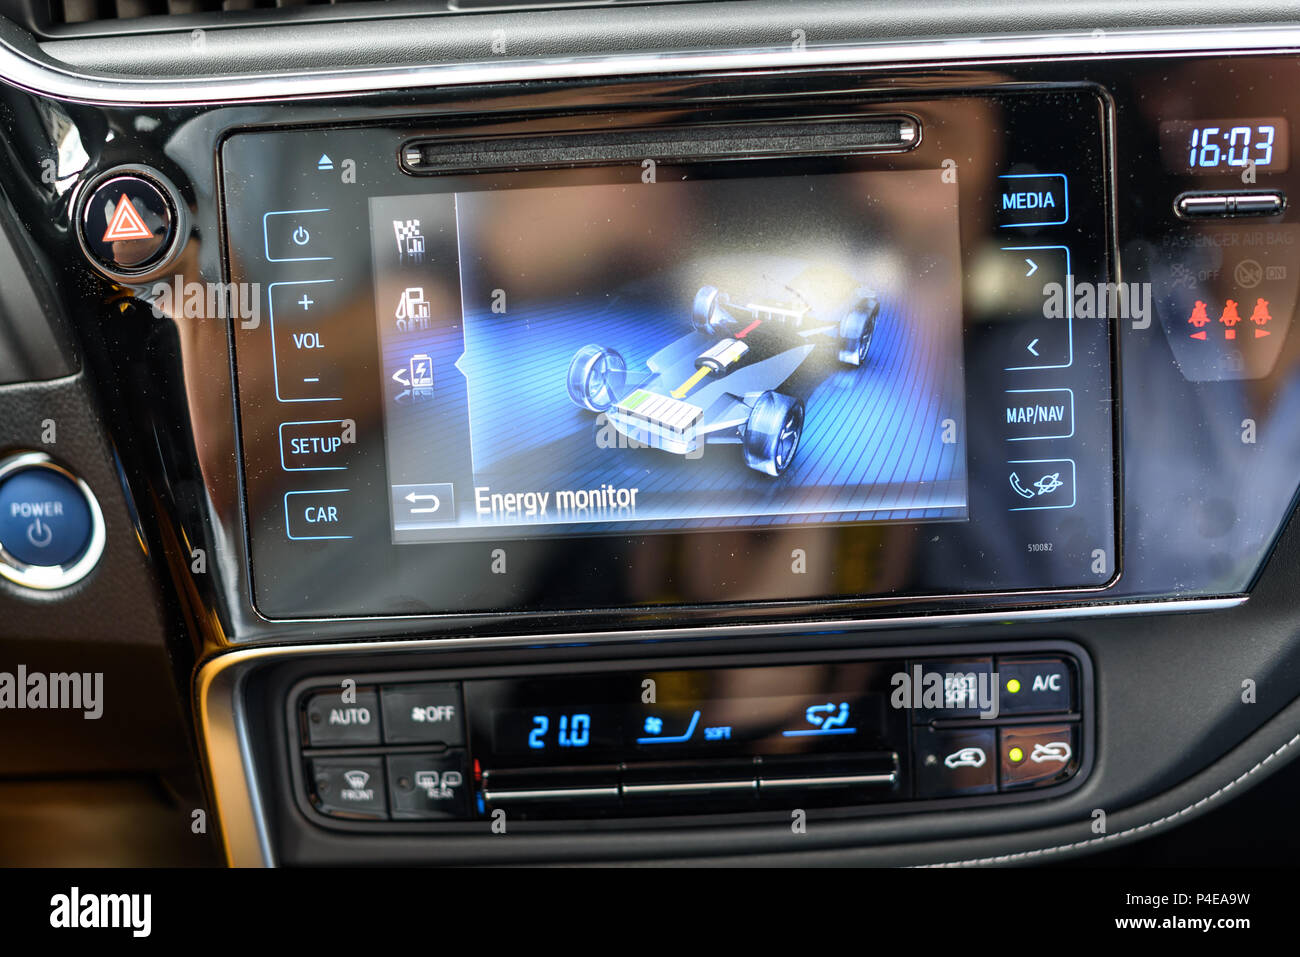 KAUNAS, LITHUANIA - JUNE 16, 2018: Interior of a new Toyota Auris hybrid car. Energy monitor. - Stock Image